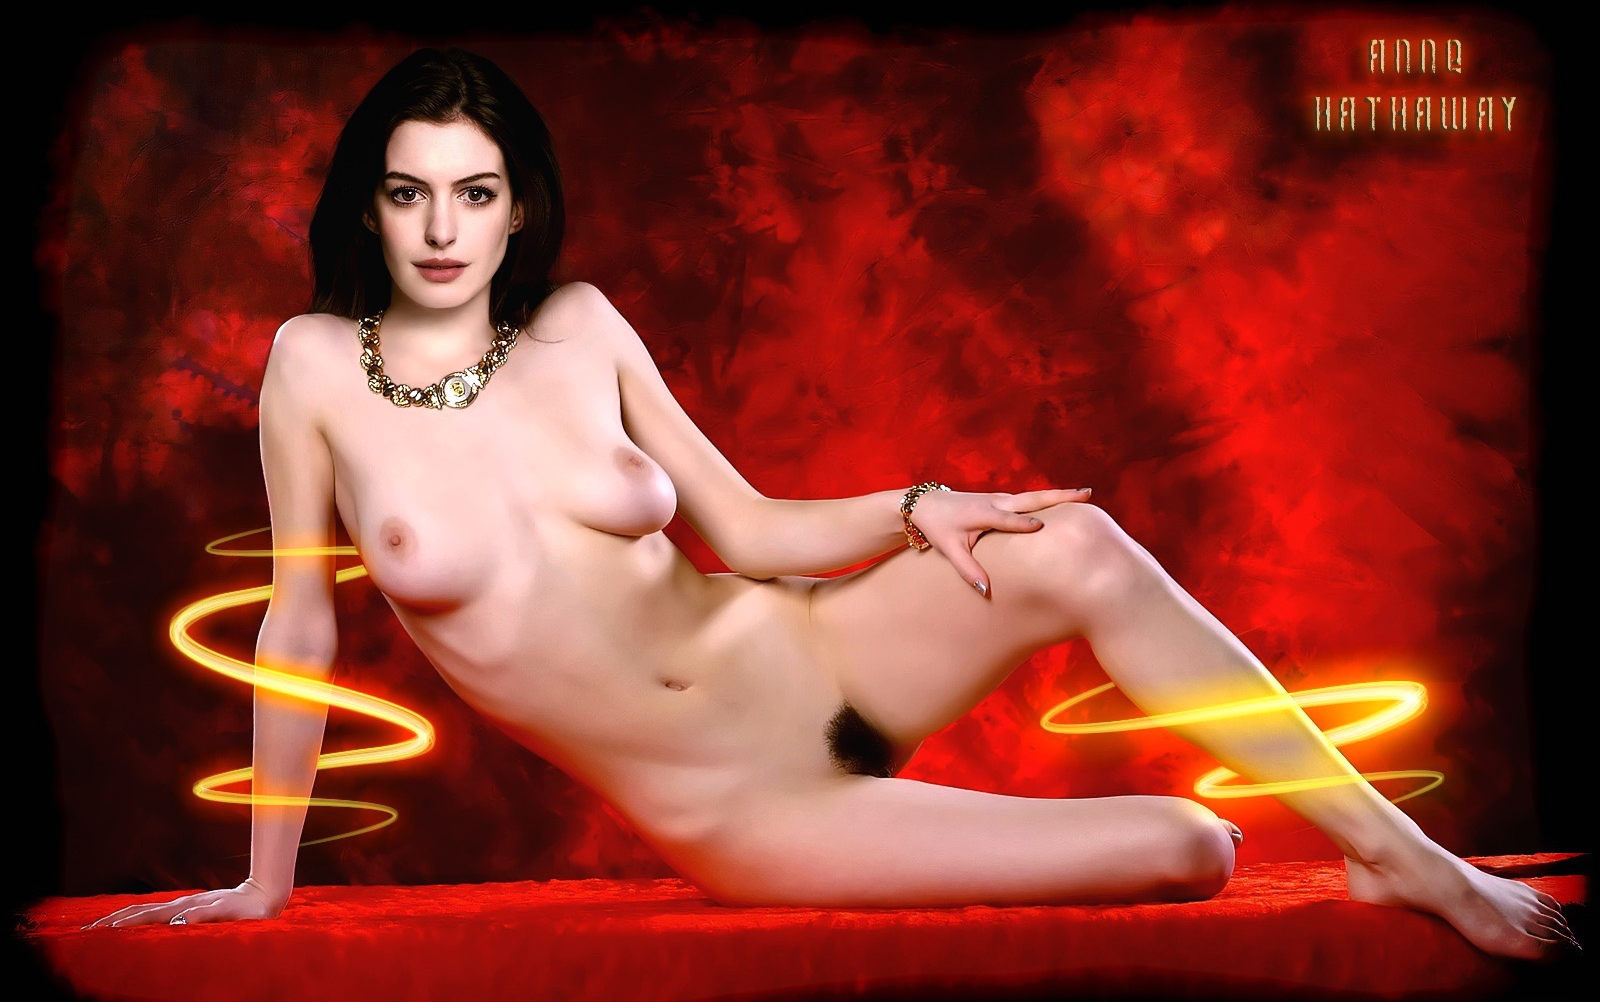 fake-naked-images-of-anne-hathaway-nude-pussy-consent